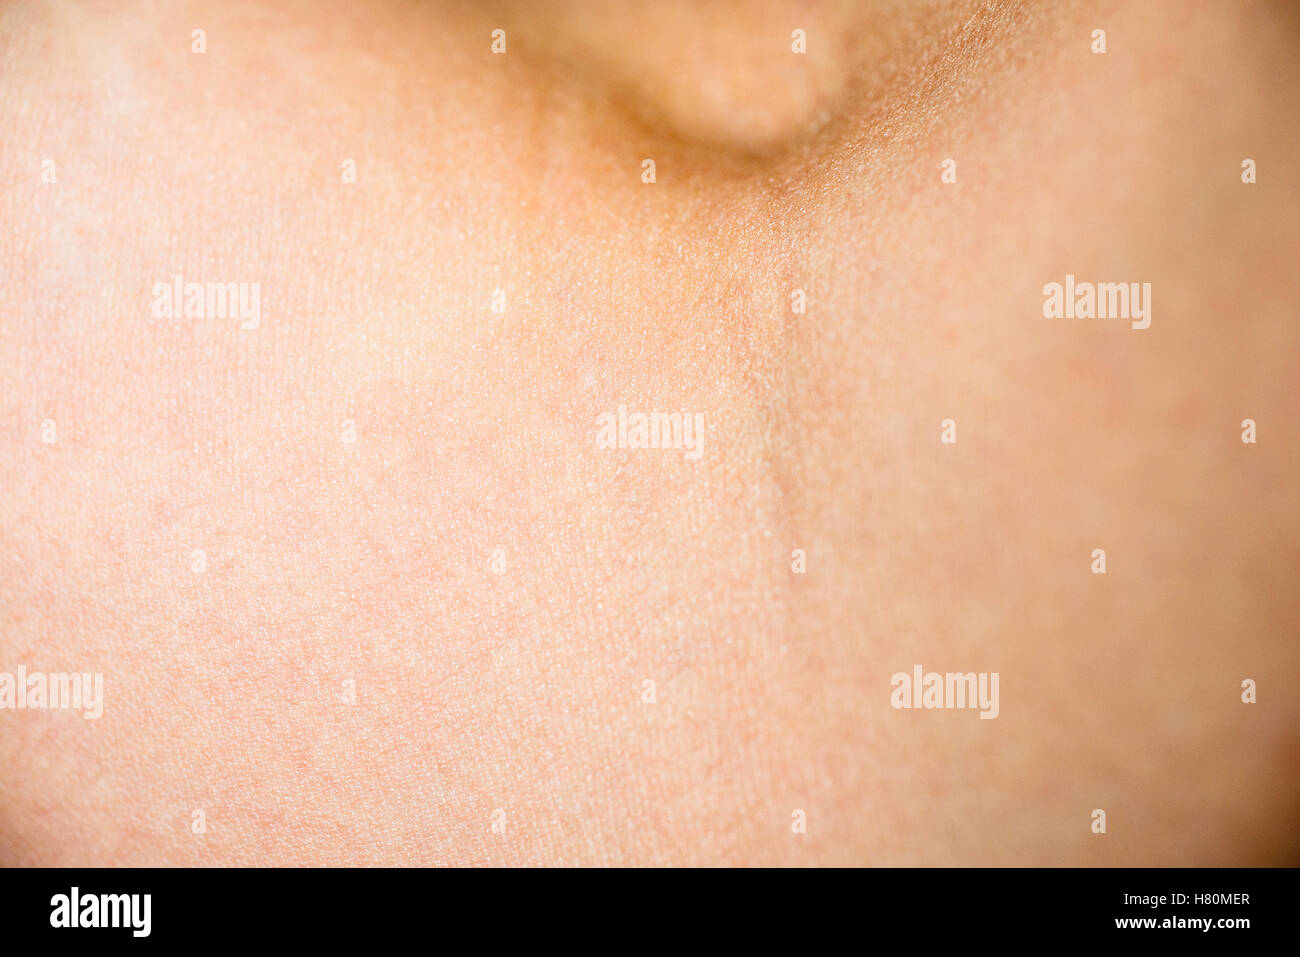 A man's skin on the inside of the elbow. - Stock Image